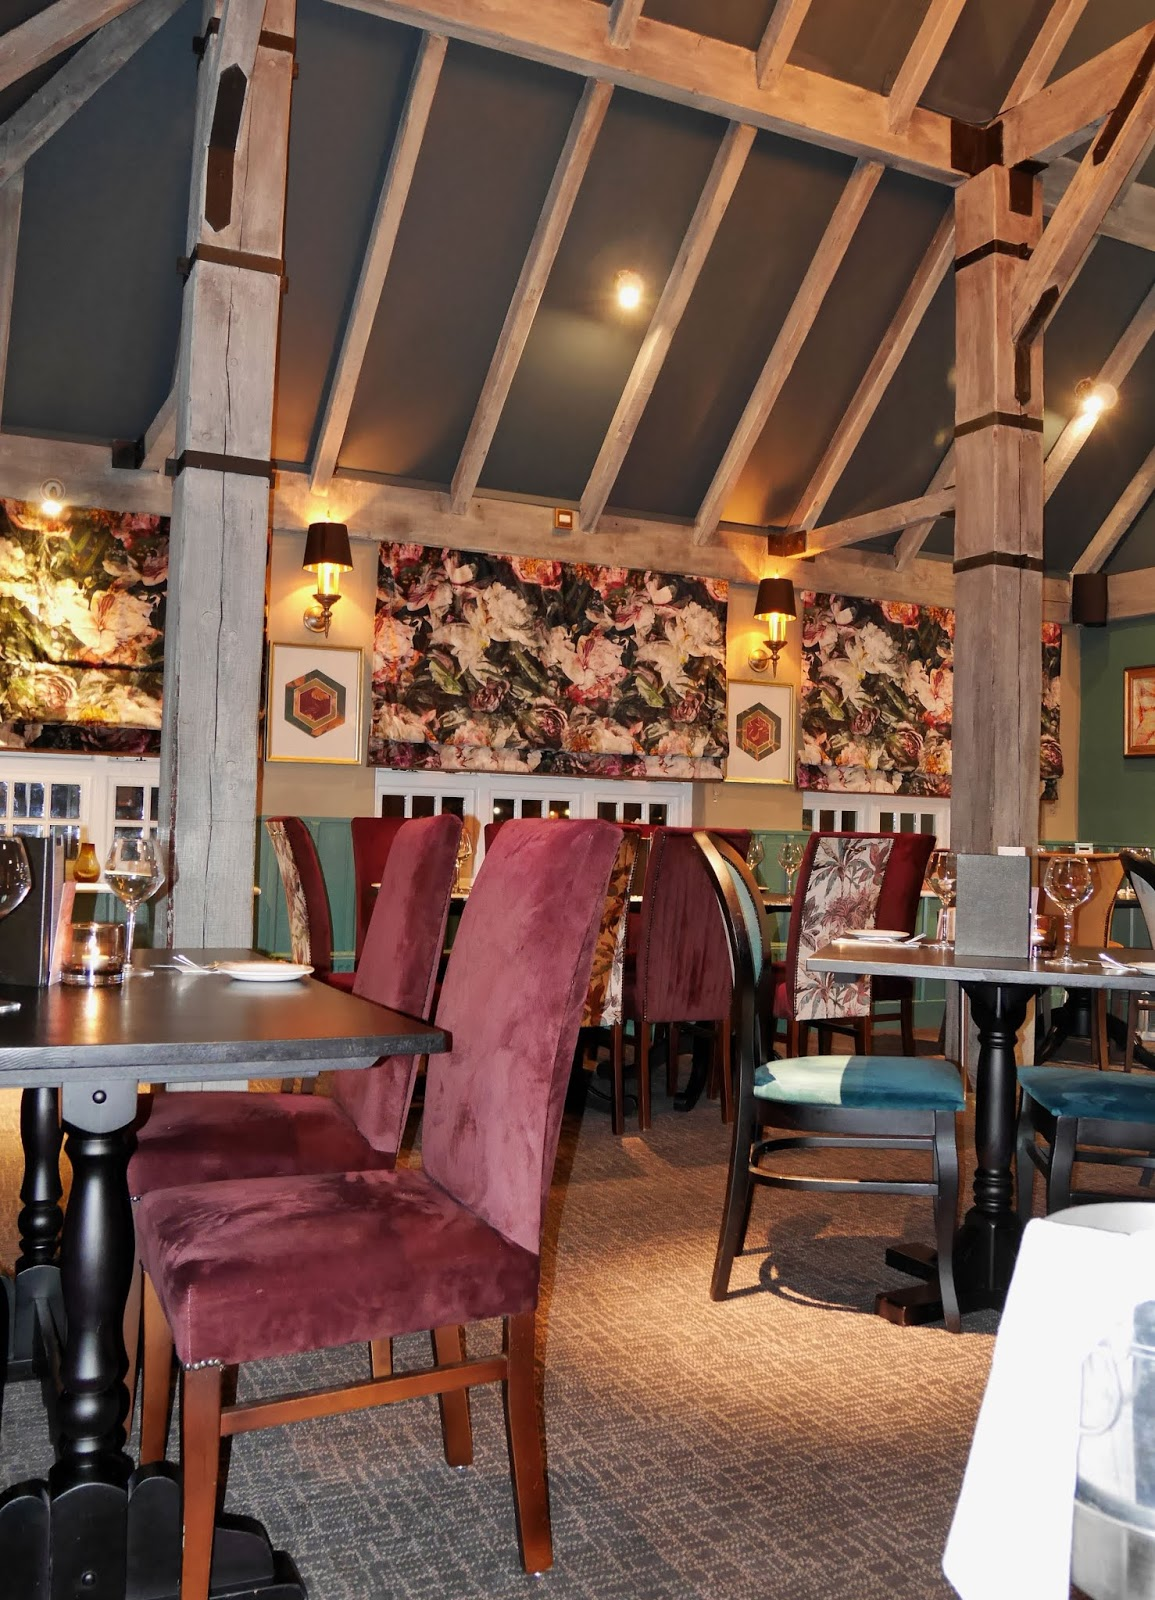 Floral decor at The Horseshoes in East Farleigh, Kent